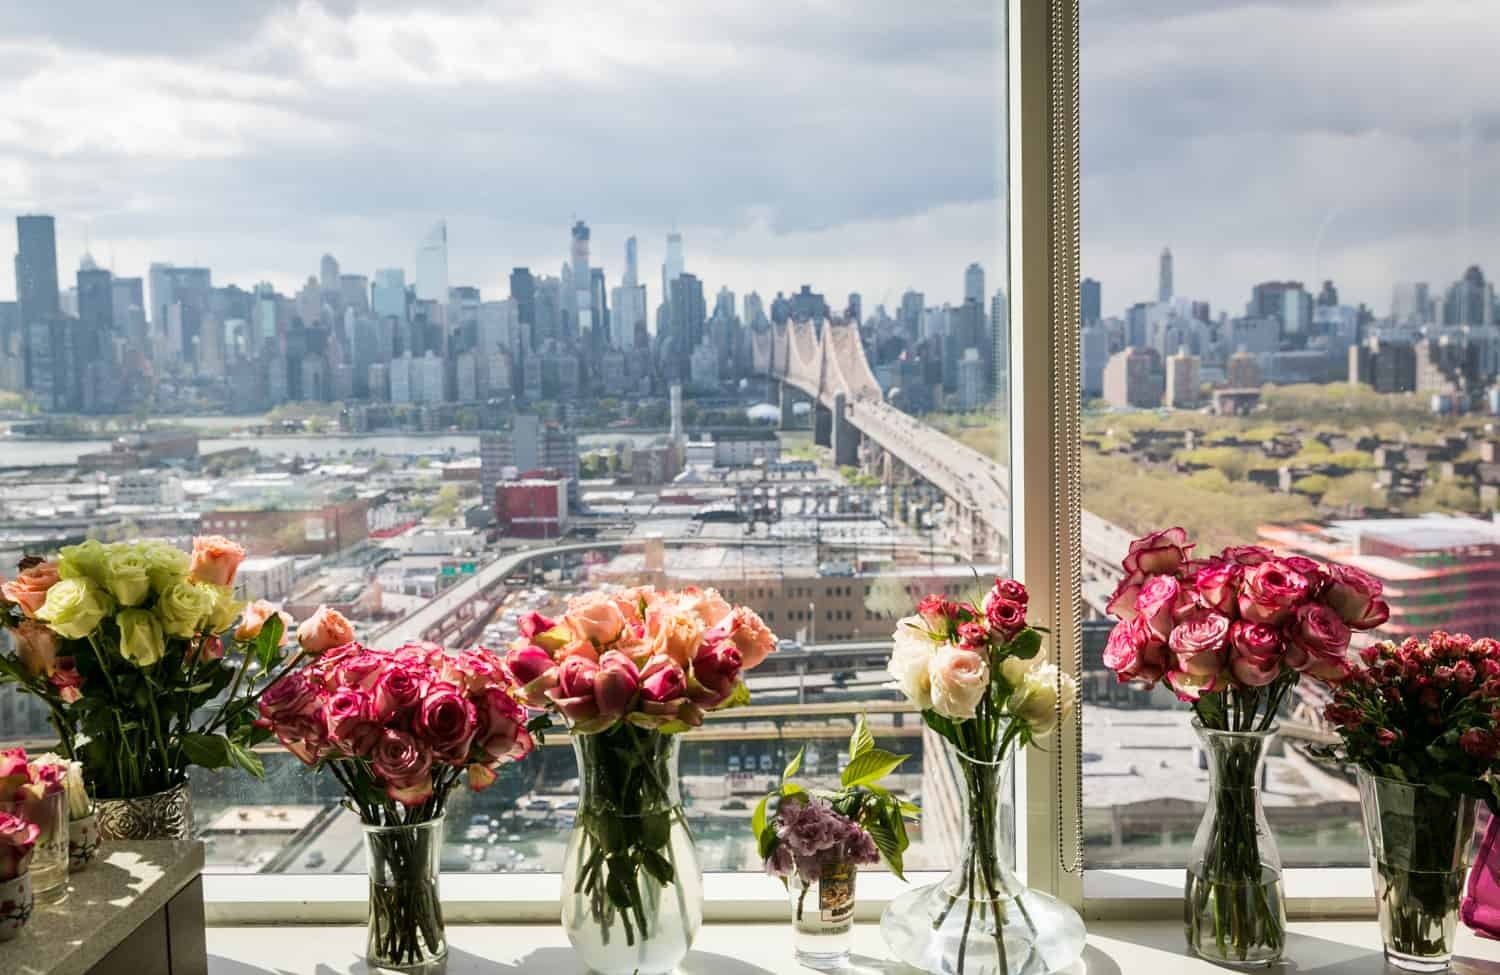 Vases of flowers on windowsill with NYC skyline in background